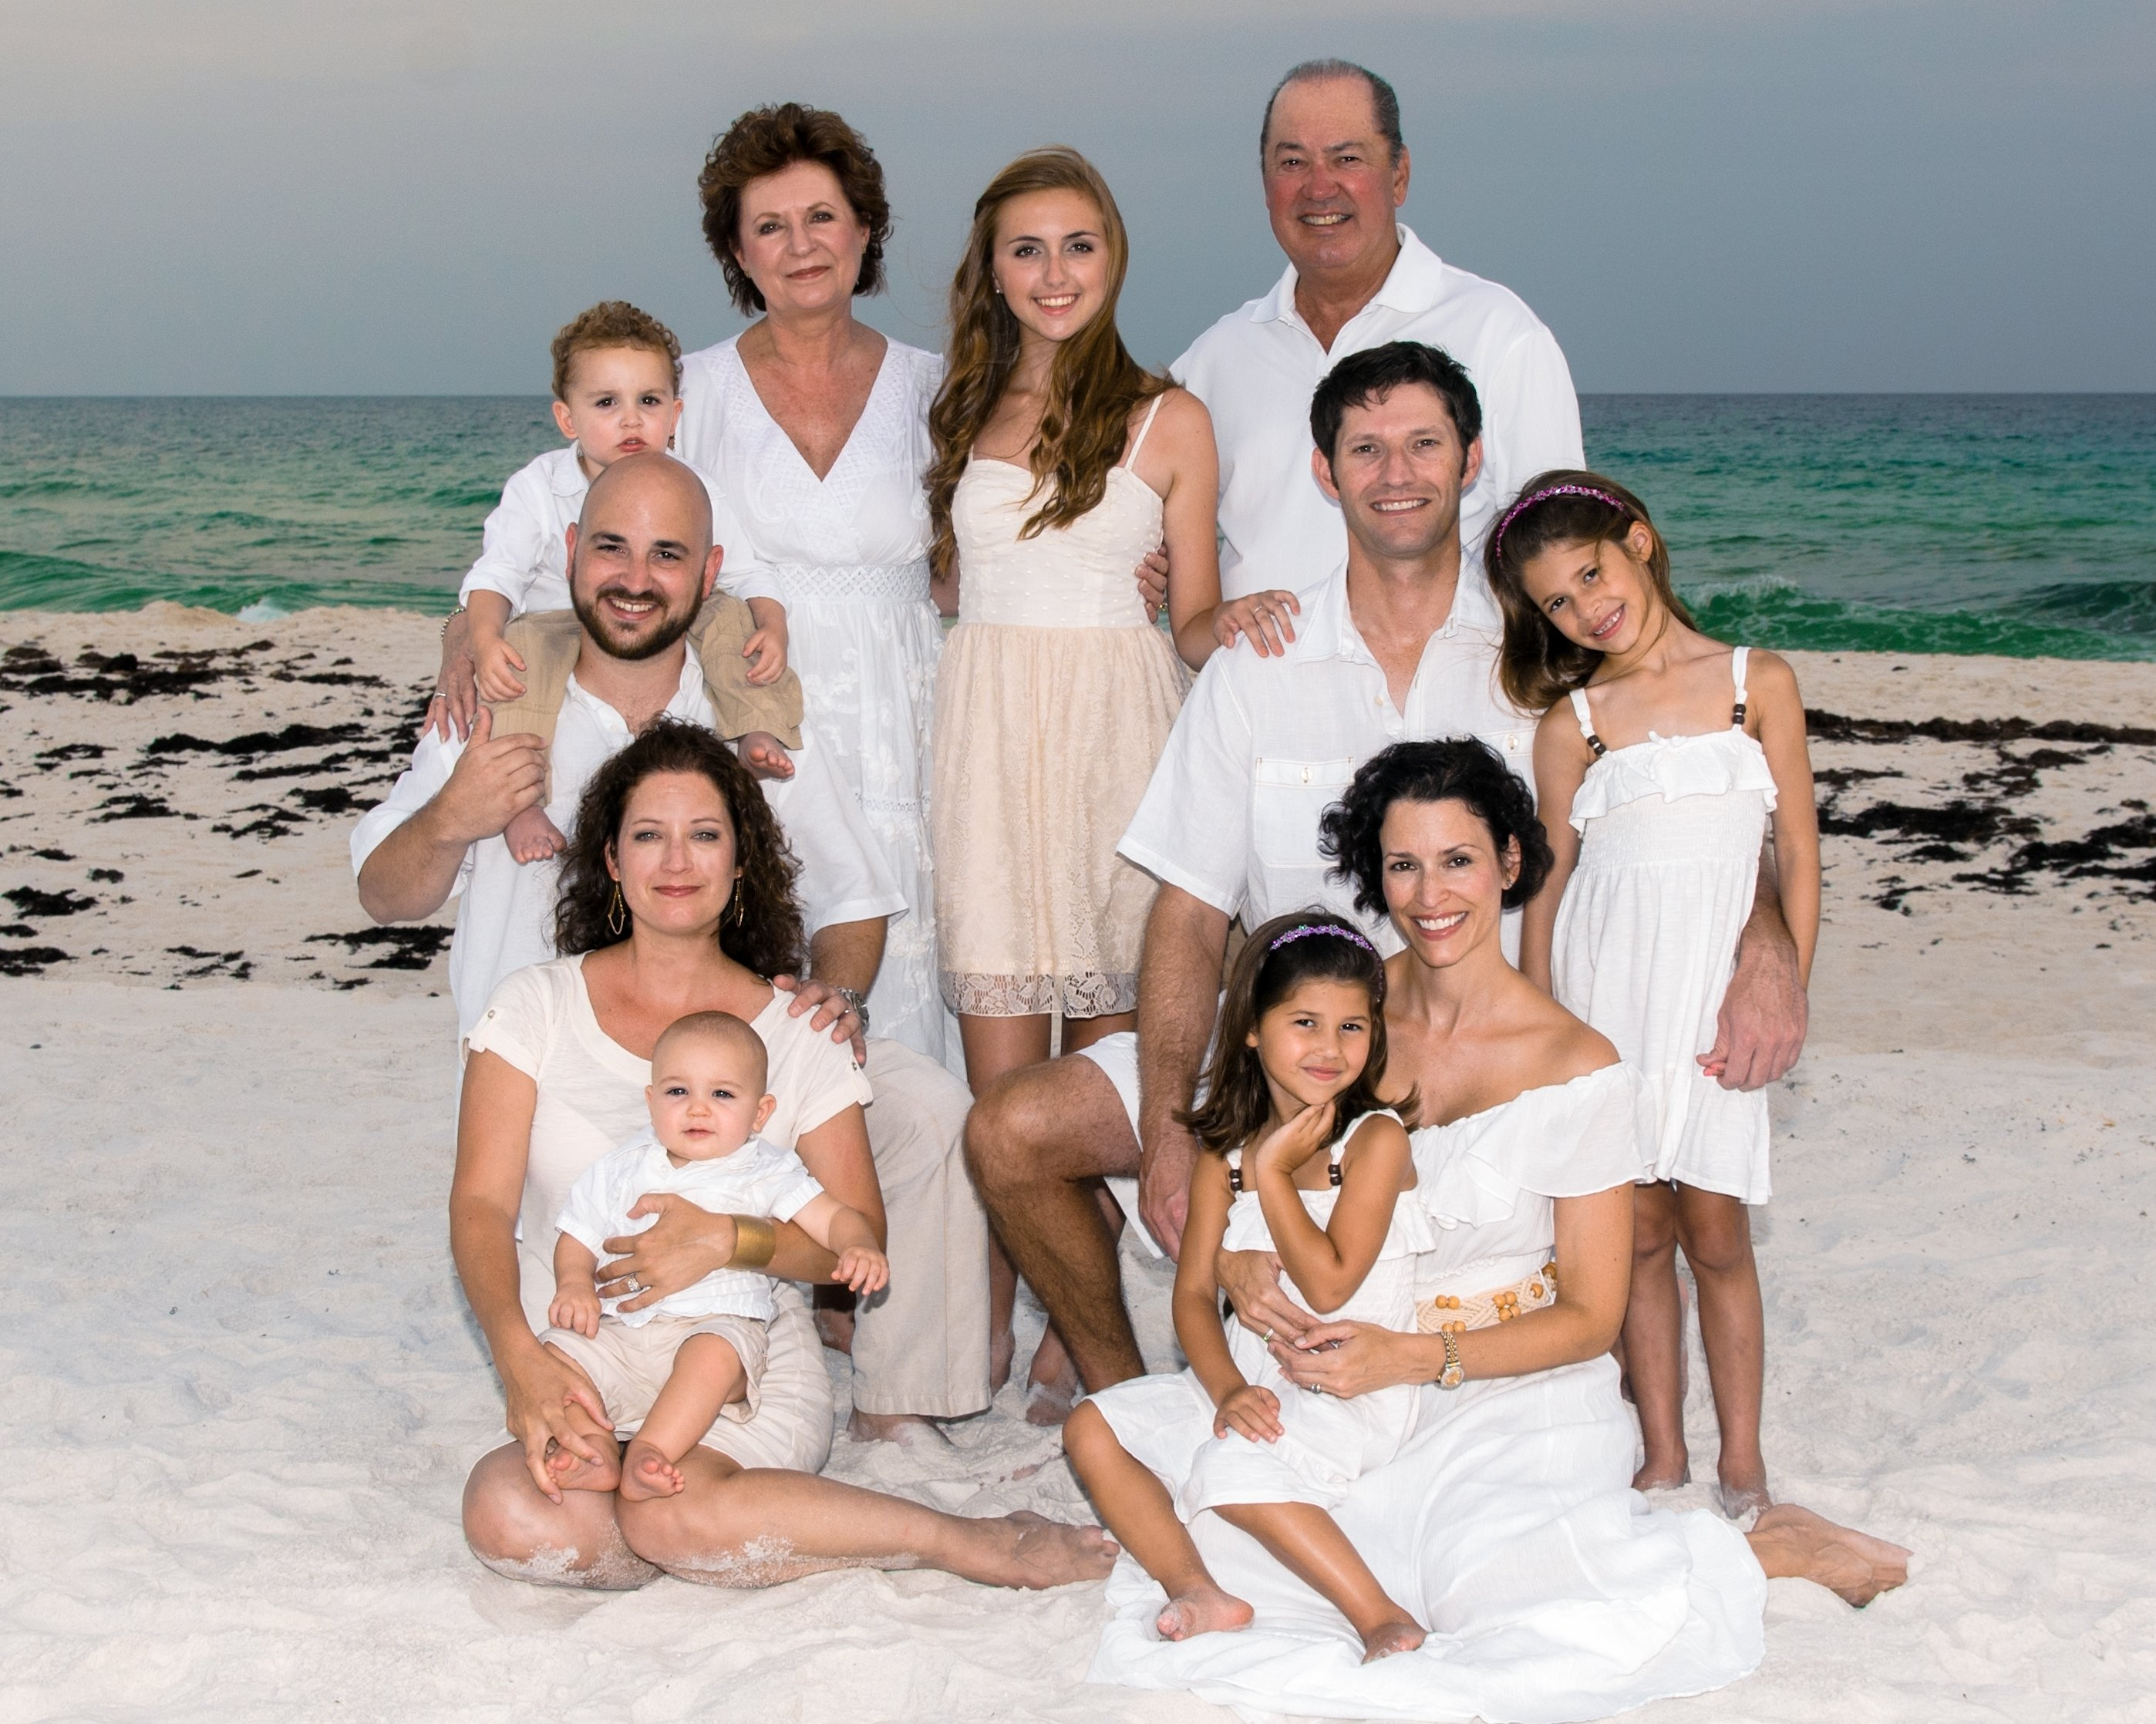 10 Awesome Large Family Photo Clothing Ideas image result for what to wear for family pictures on the beach 2021